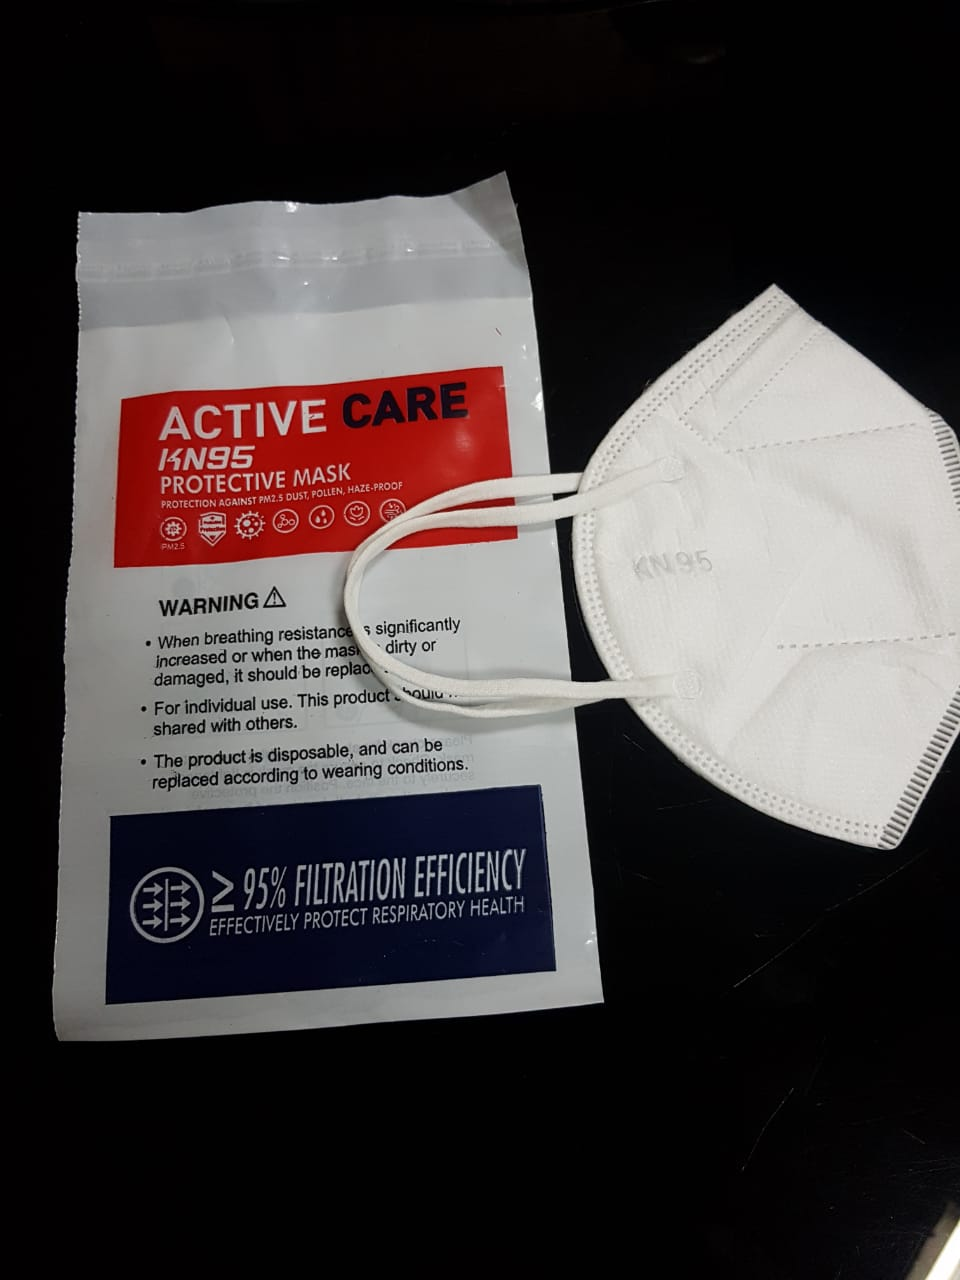 ACTIVE CARE KN  95 Face Maskk with 95% FILTERATION EFFICACY